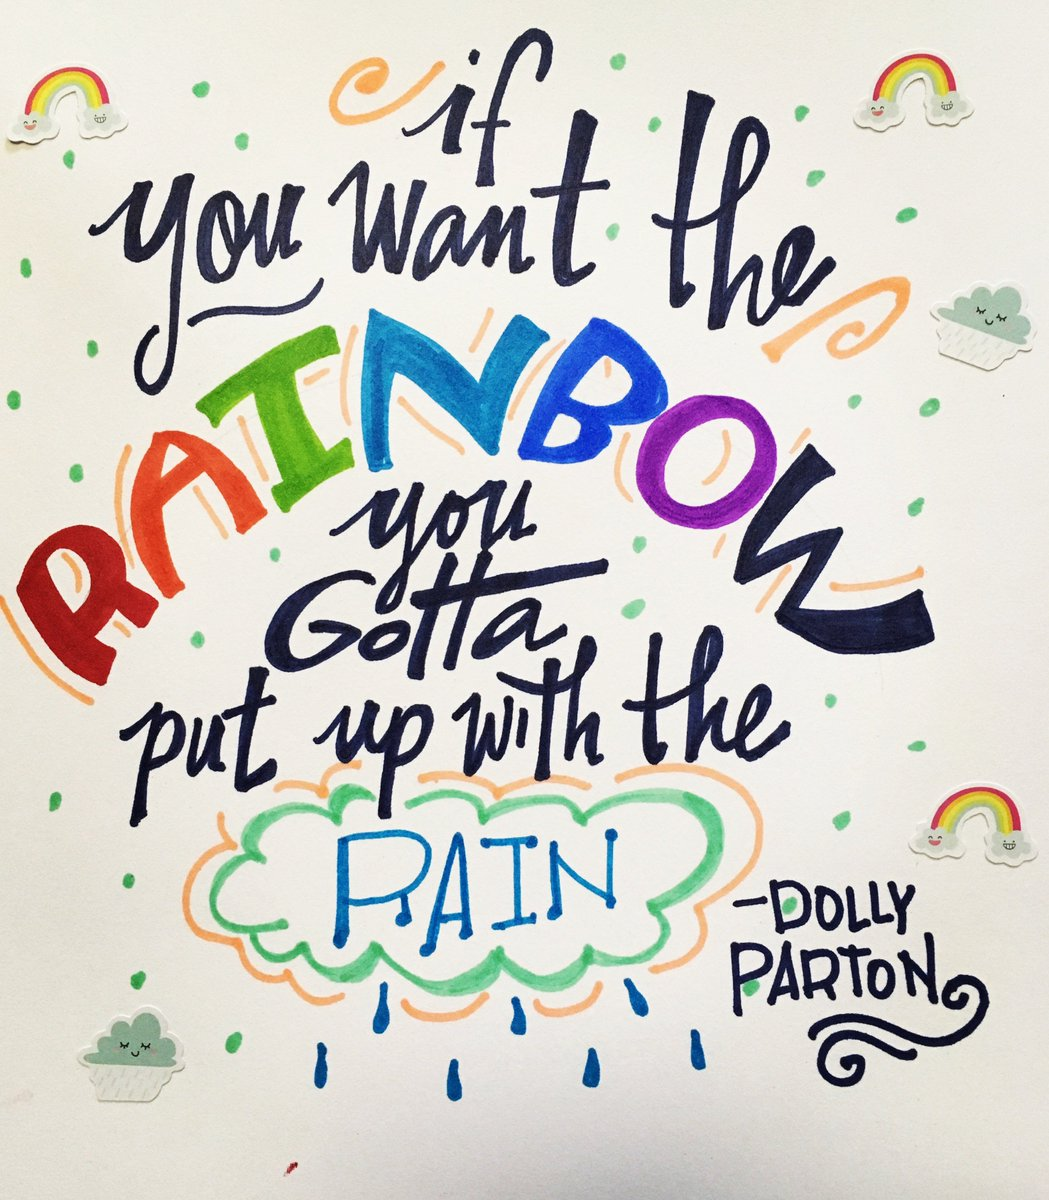 test Twitter Media - Keep this Monday Mantra in mind during the rain ☔️ this week! Happy Monday! 🌈 #bbcnola #mondaymantra #mondaymotivation #motivationalquotes #rainbow #rainraingoaway #dollyparton #eventprofs https://t.co/o2eTkzmK34